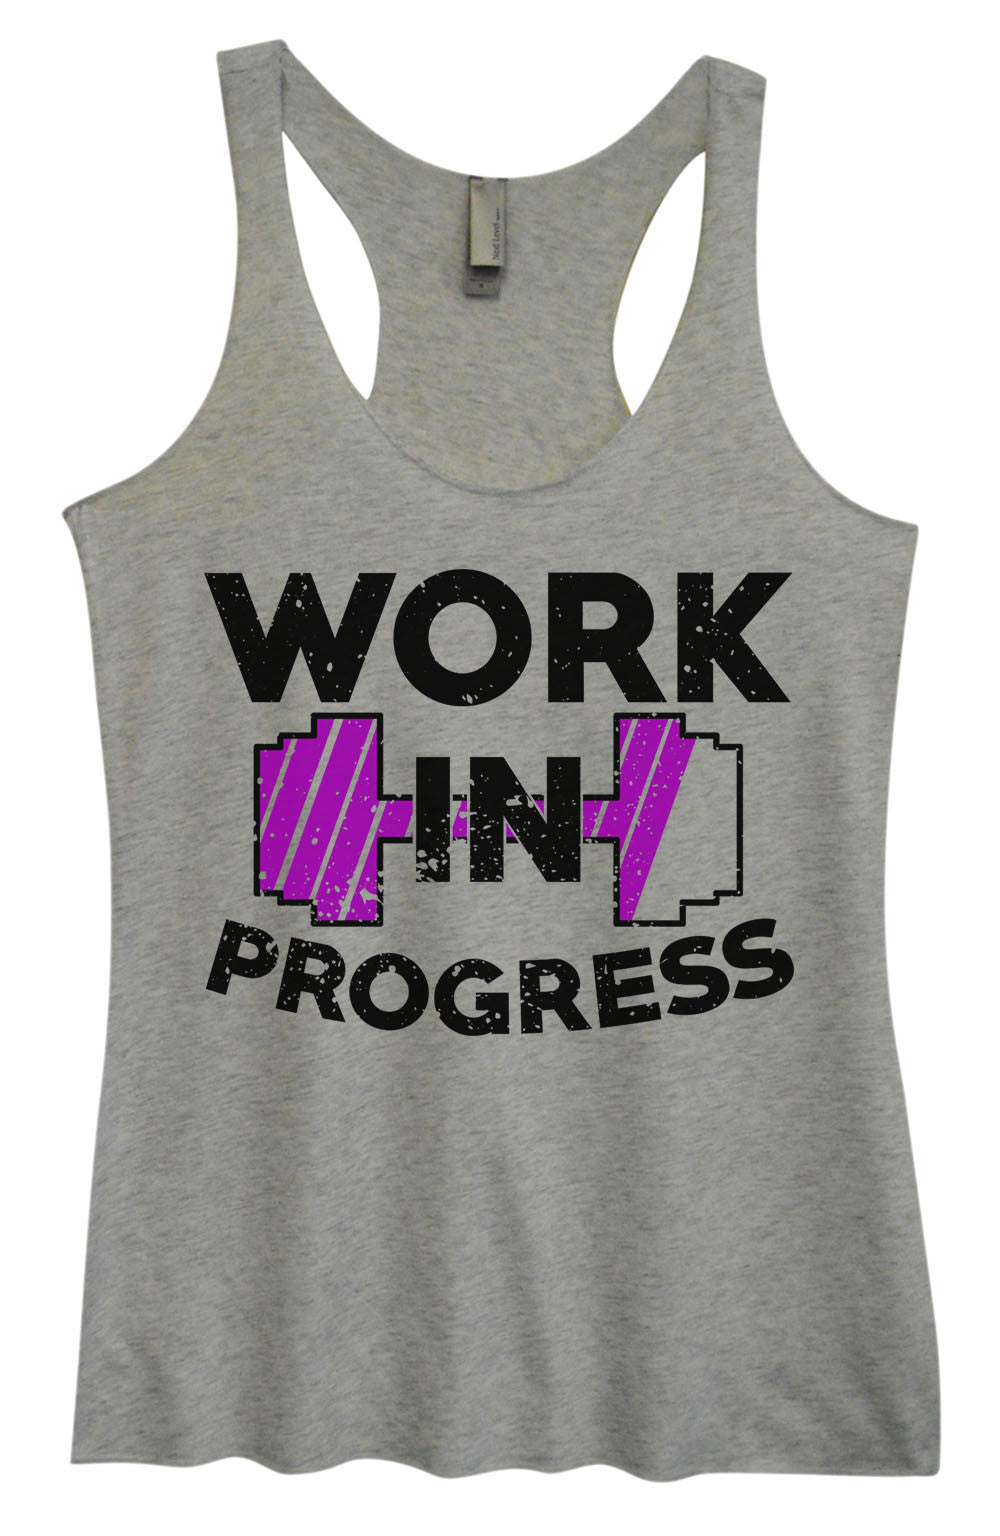 Womens Fashion Triblend Tank Top - Work In Progress - Tri-962 - Funny Shirts Tank Tops Burnouts and Triblends  - 2